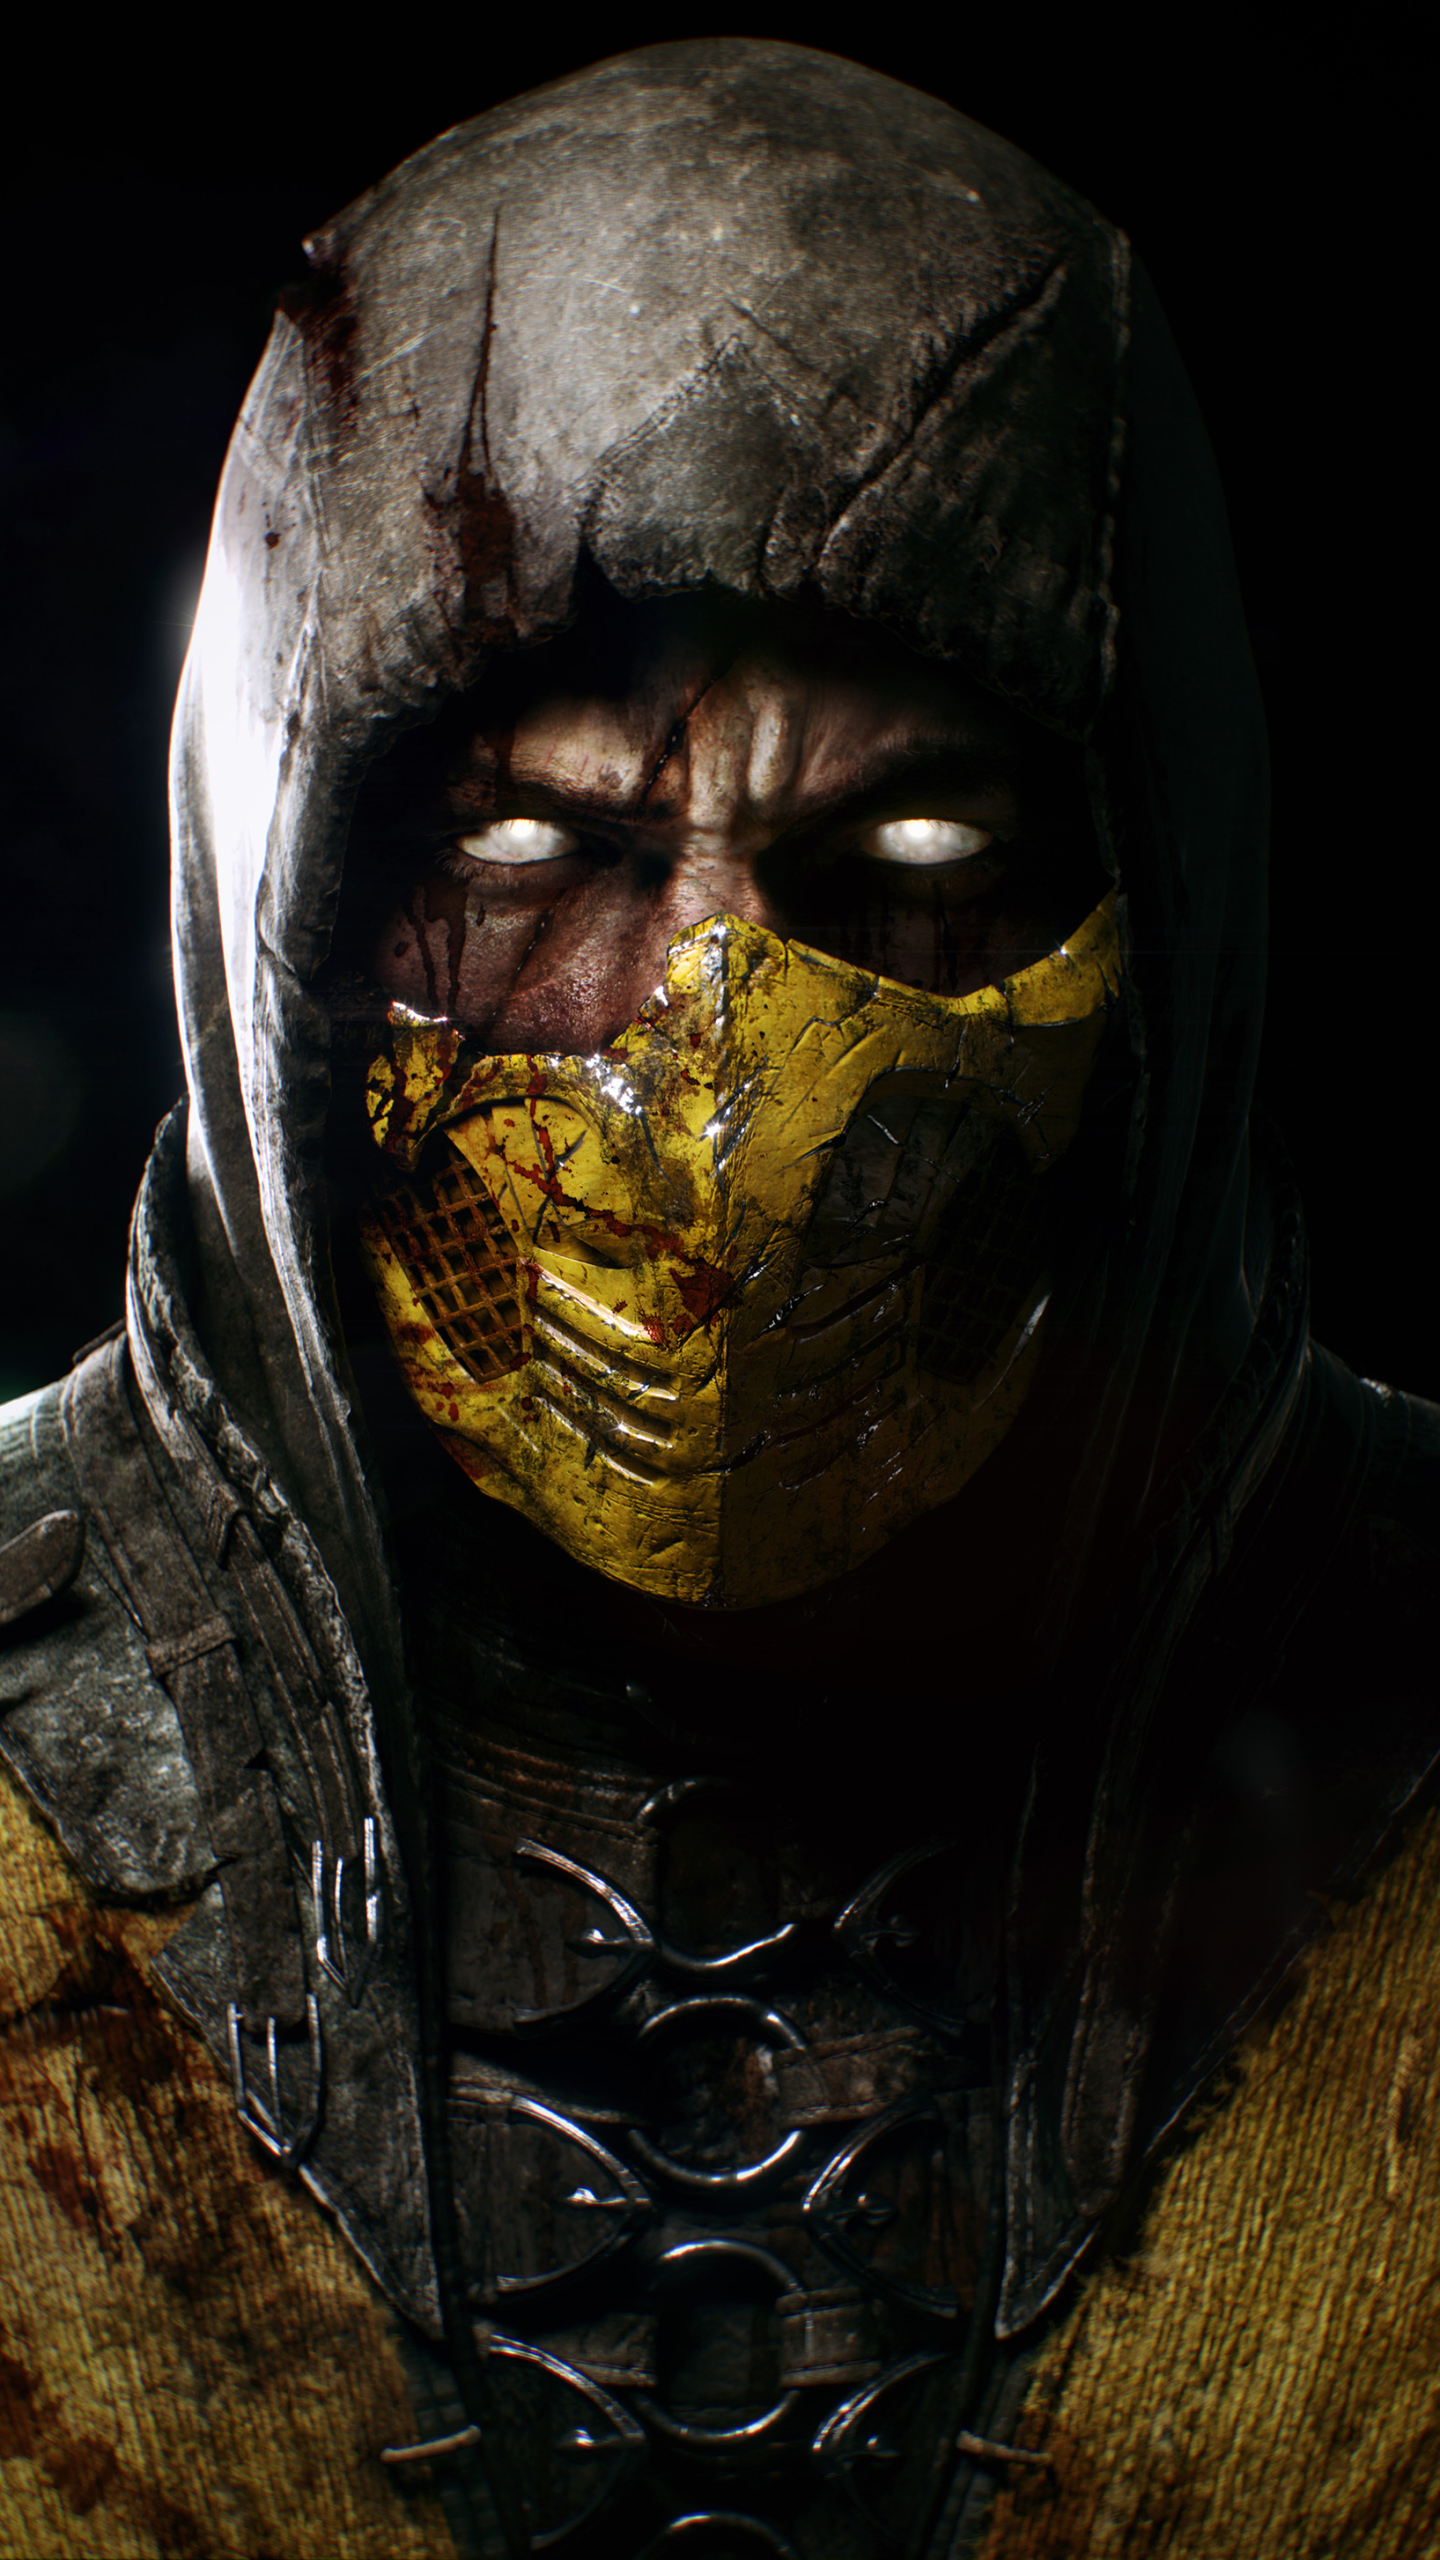 Iphone wallpaper game - Iphone 6 Plus Video Game Mortal Kombat X Wallpaper Id